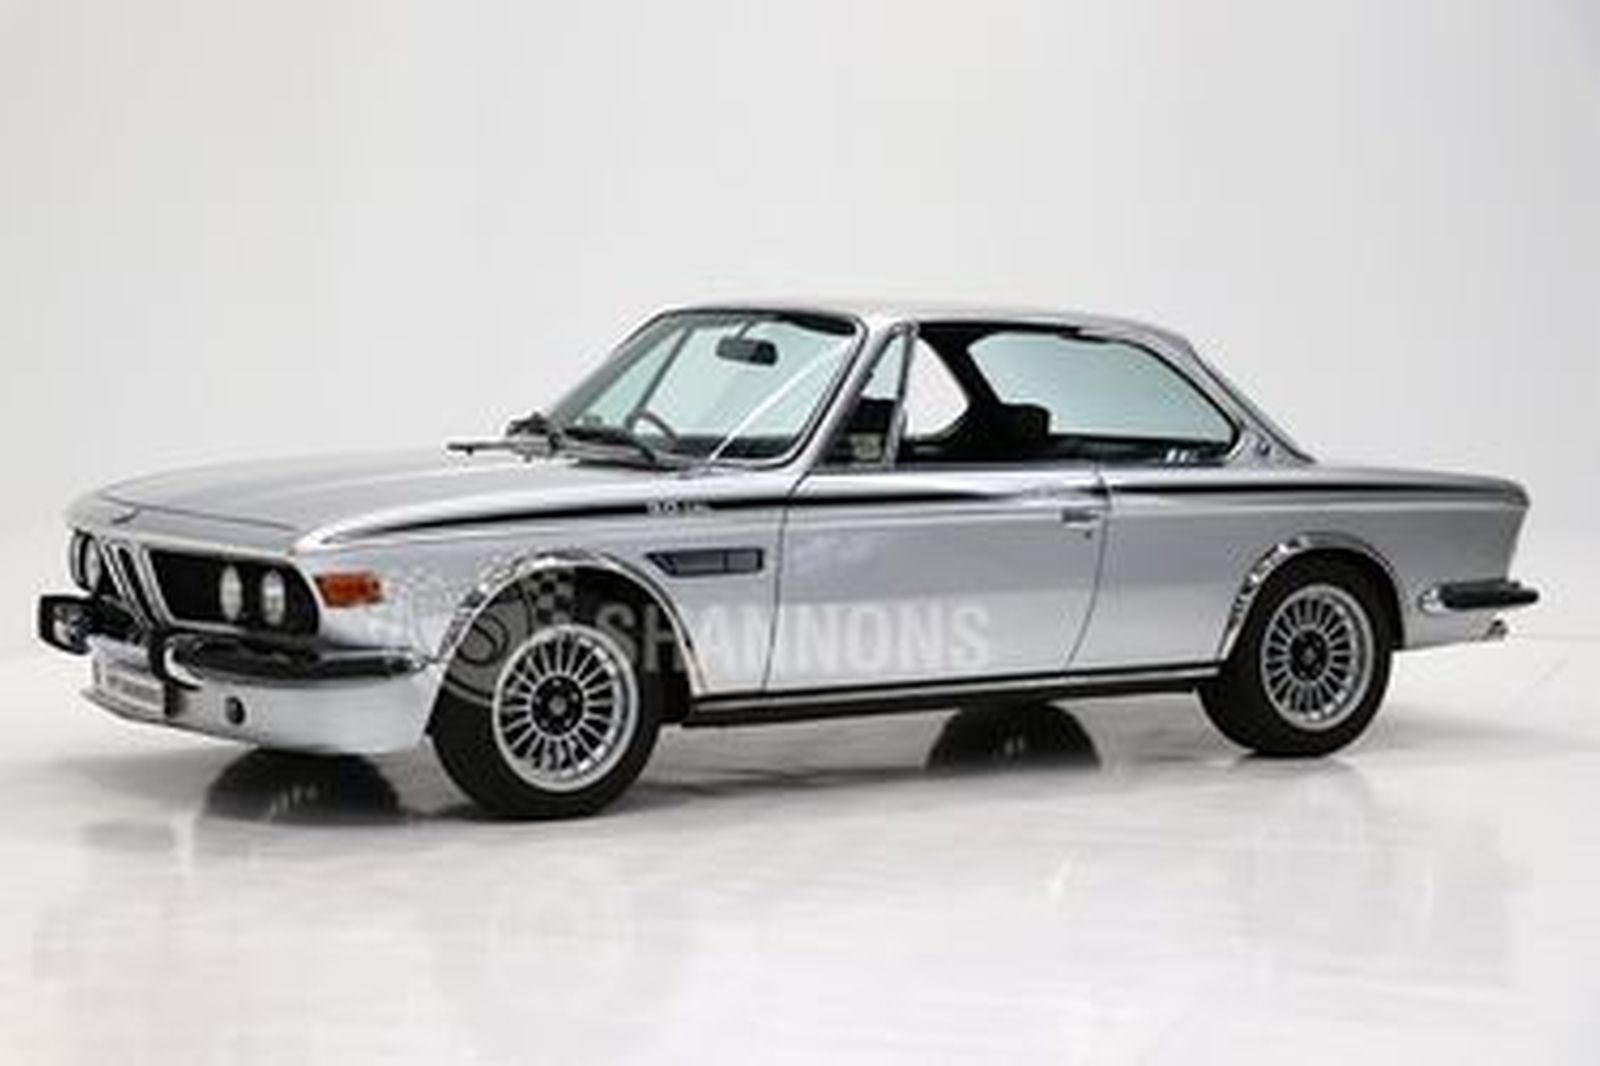 1973 3.0 Csl >> Sold: BMW 3.0 CSL Coupe Auctions - Lot 47 - Shannons